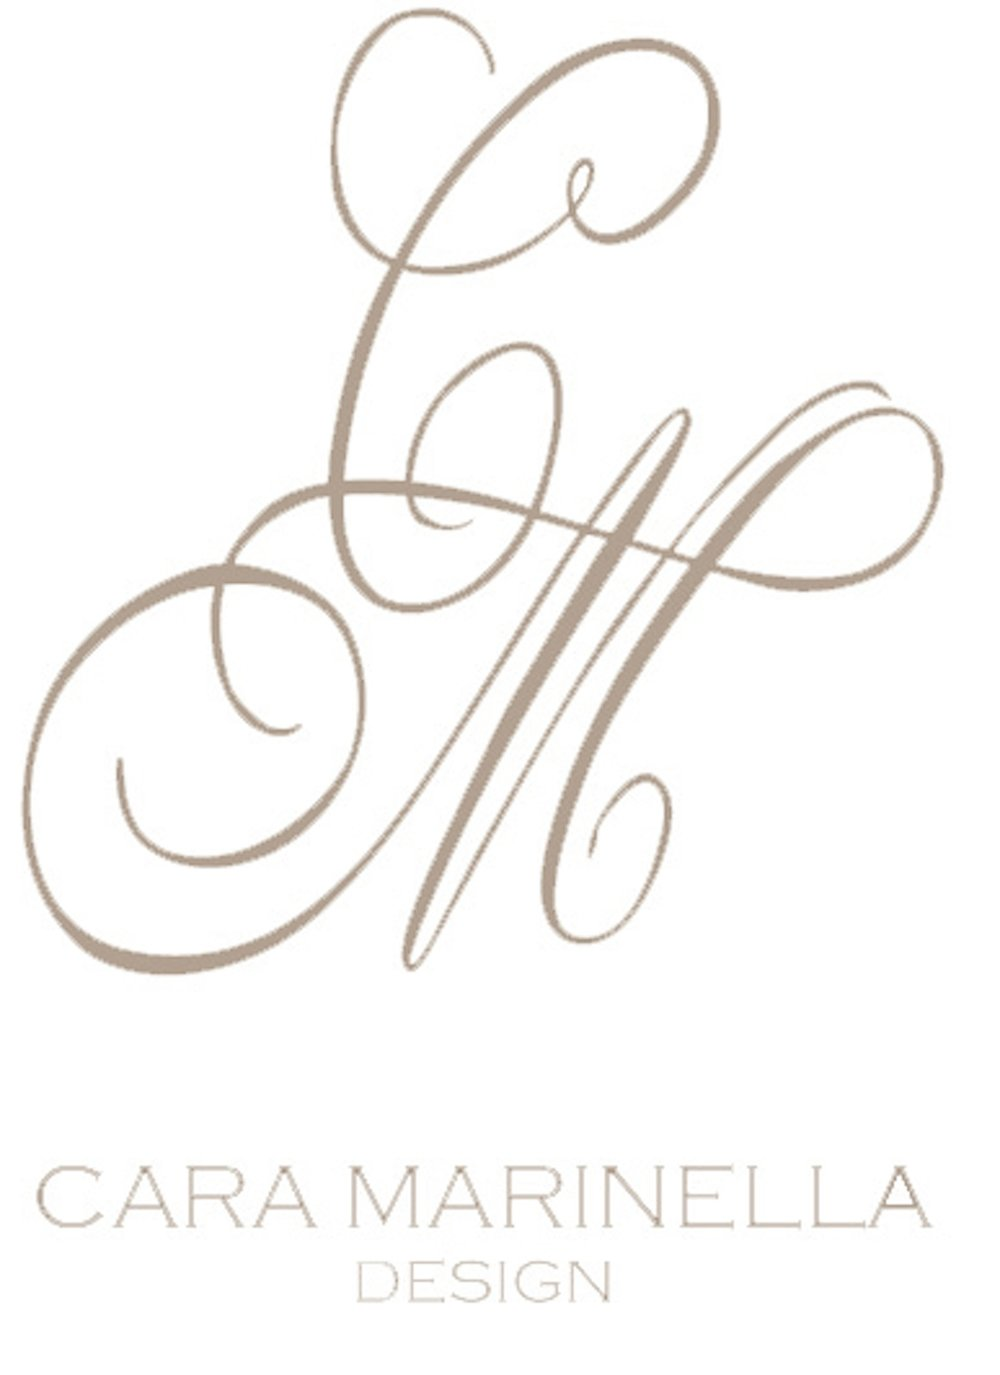 Cara Marinella Design